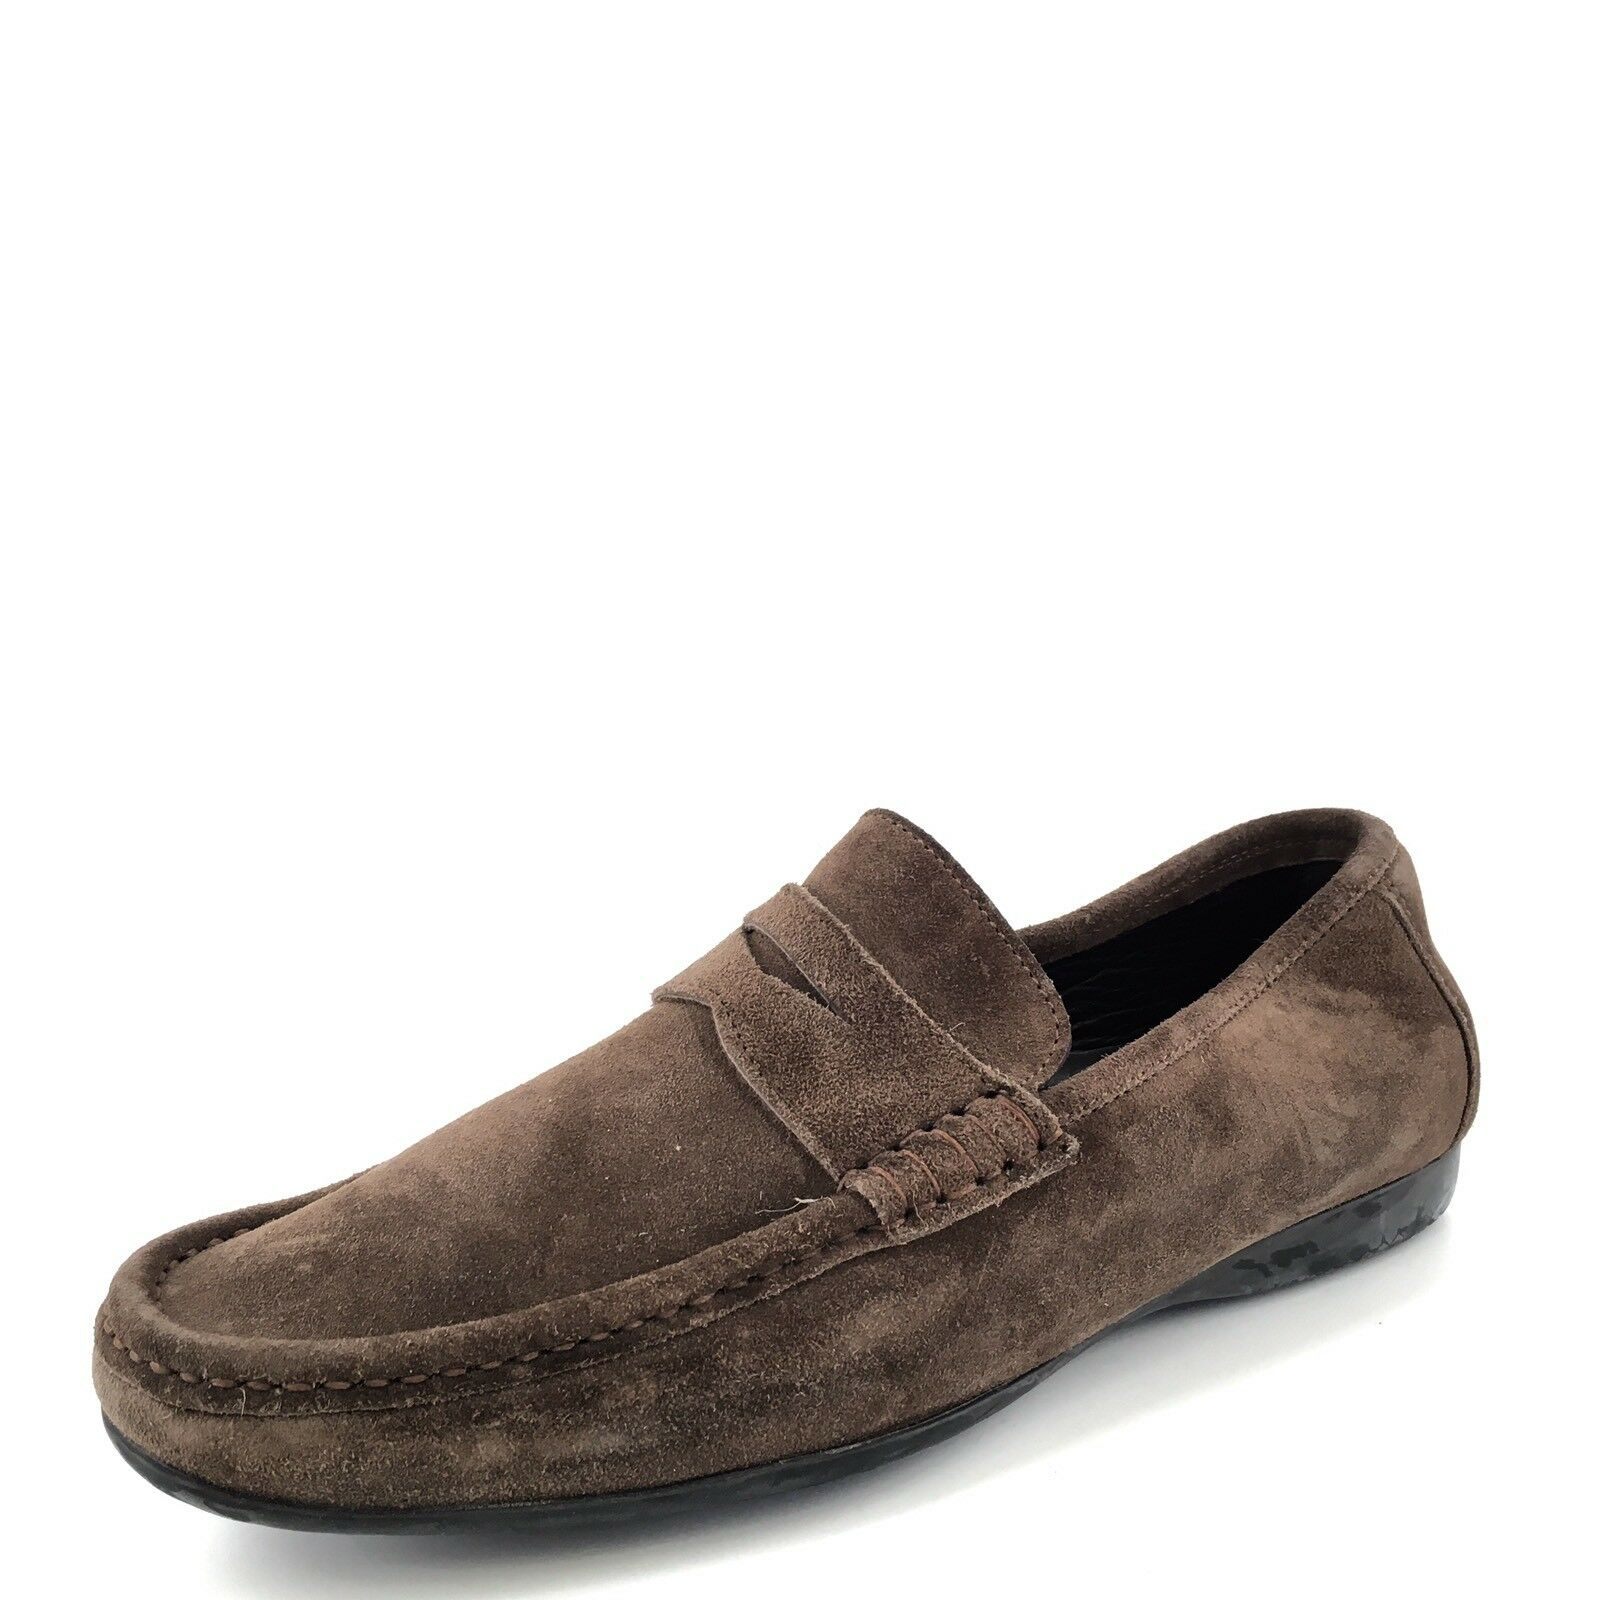 Bruno Magli Partie Brown Suede Penny Loafers Men's Size 7.5 M  425